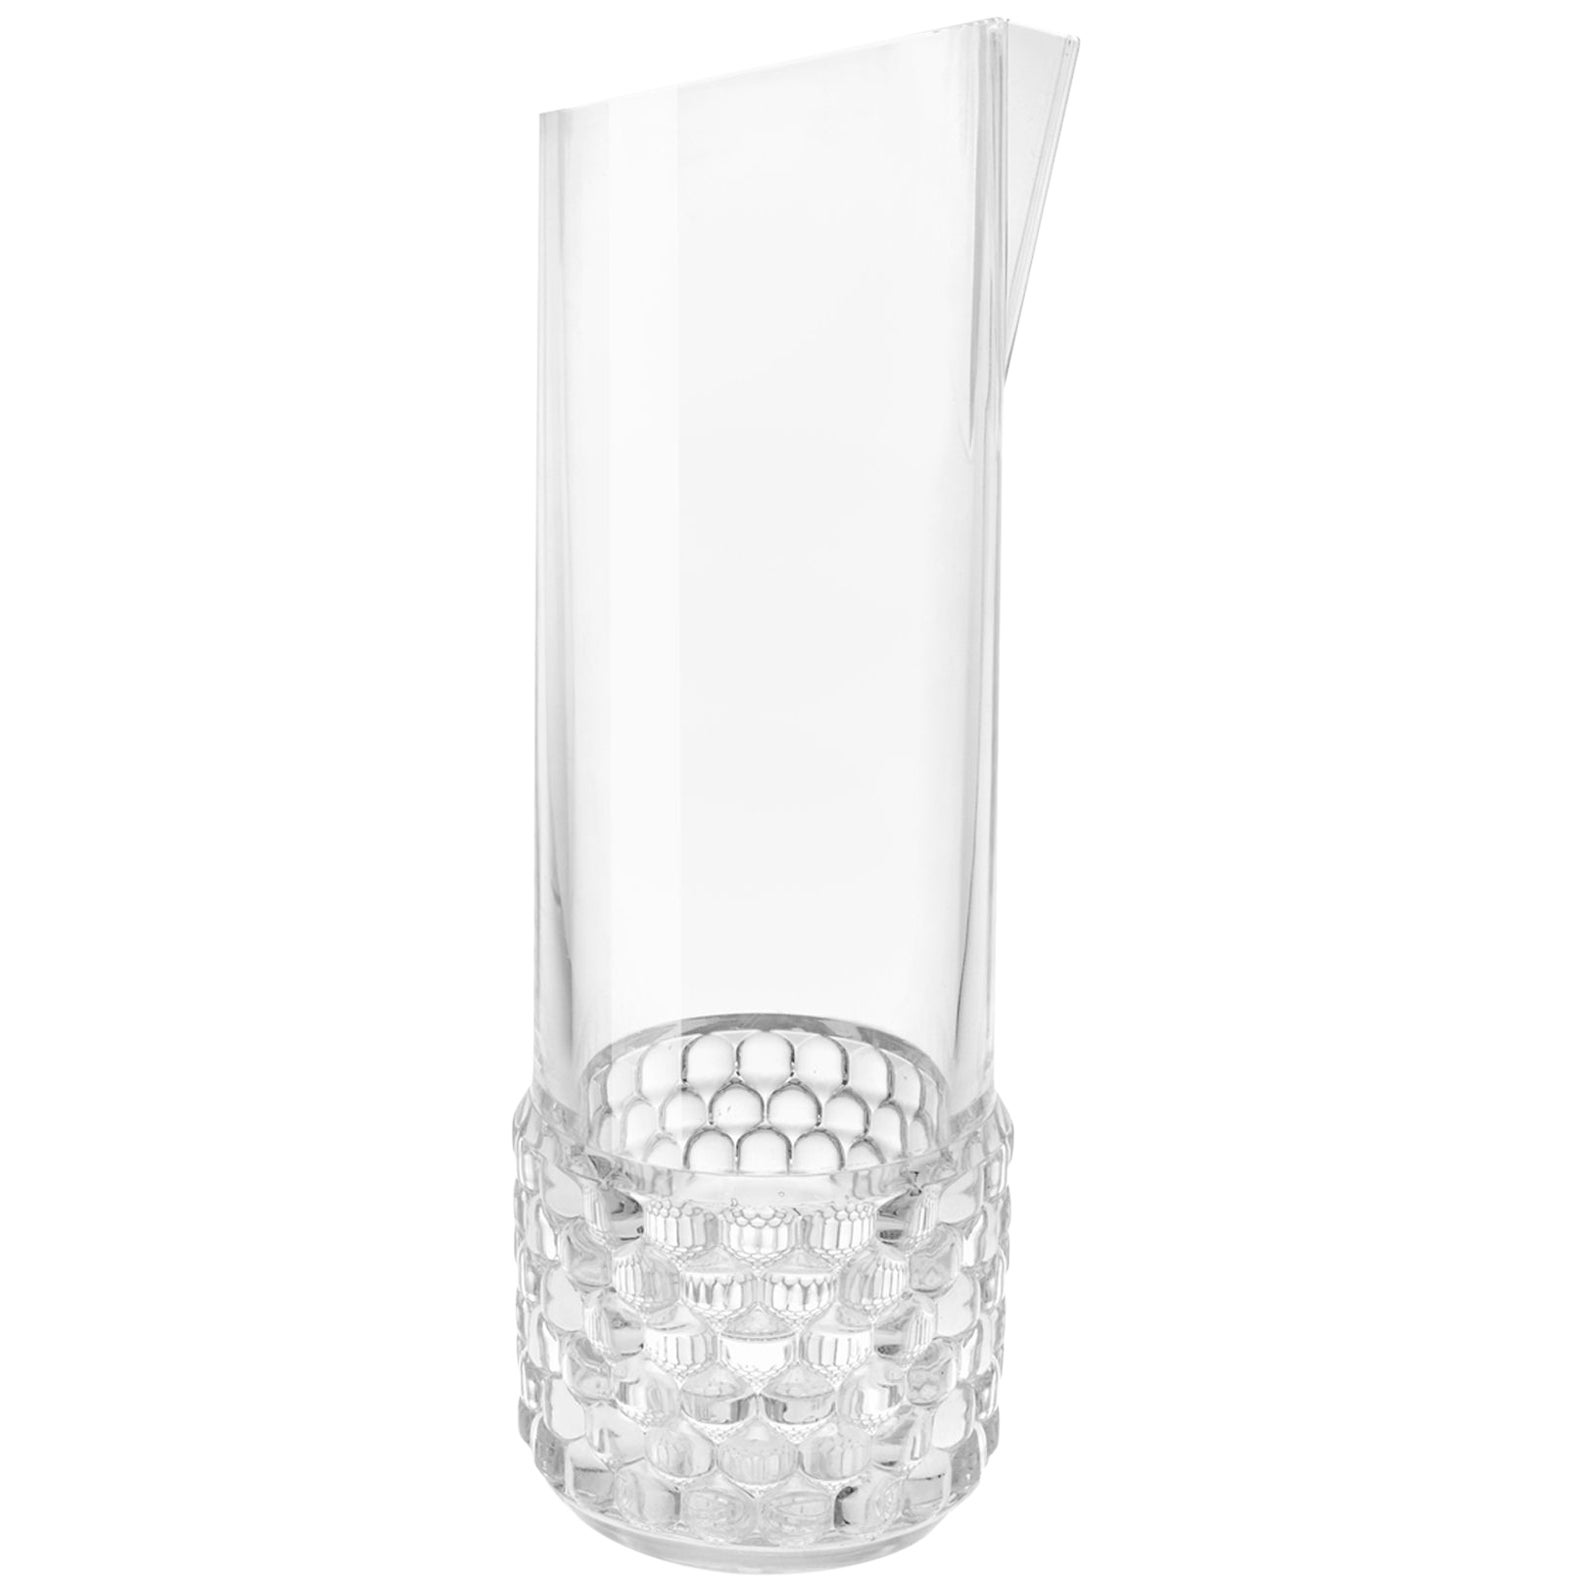 Kartell Jellies Carafe in Crystal by Patricia Urquiola